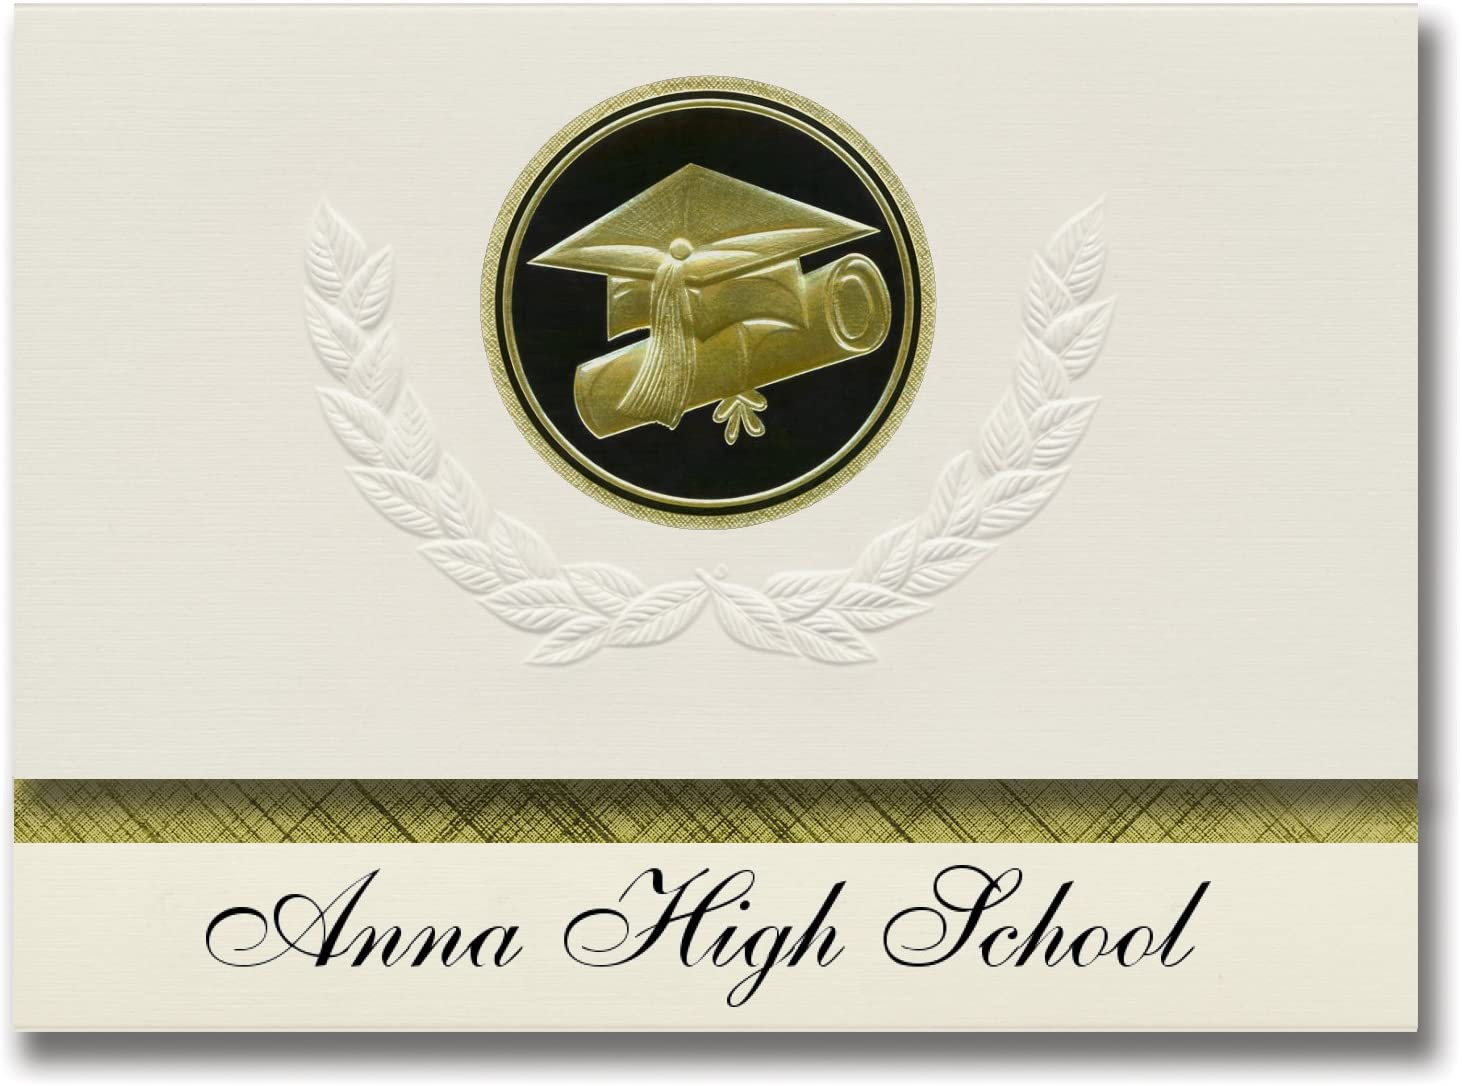 Signature Announcements Anna High School (Anna, TX) Graduation Announcements, Presidential style, Elite package of 25 Cap & Diploma Seal Black & Gold